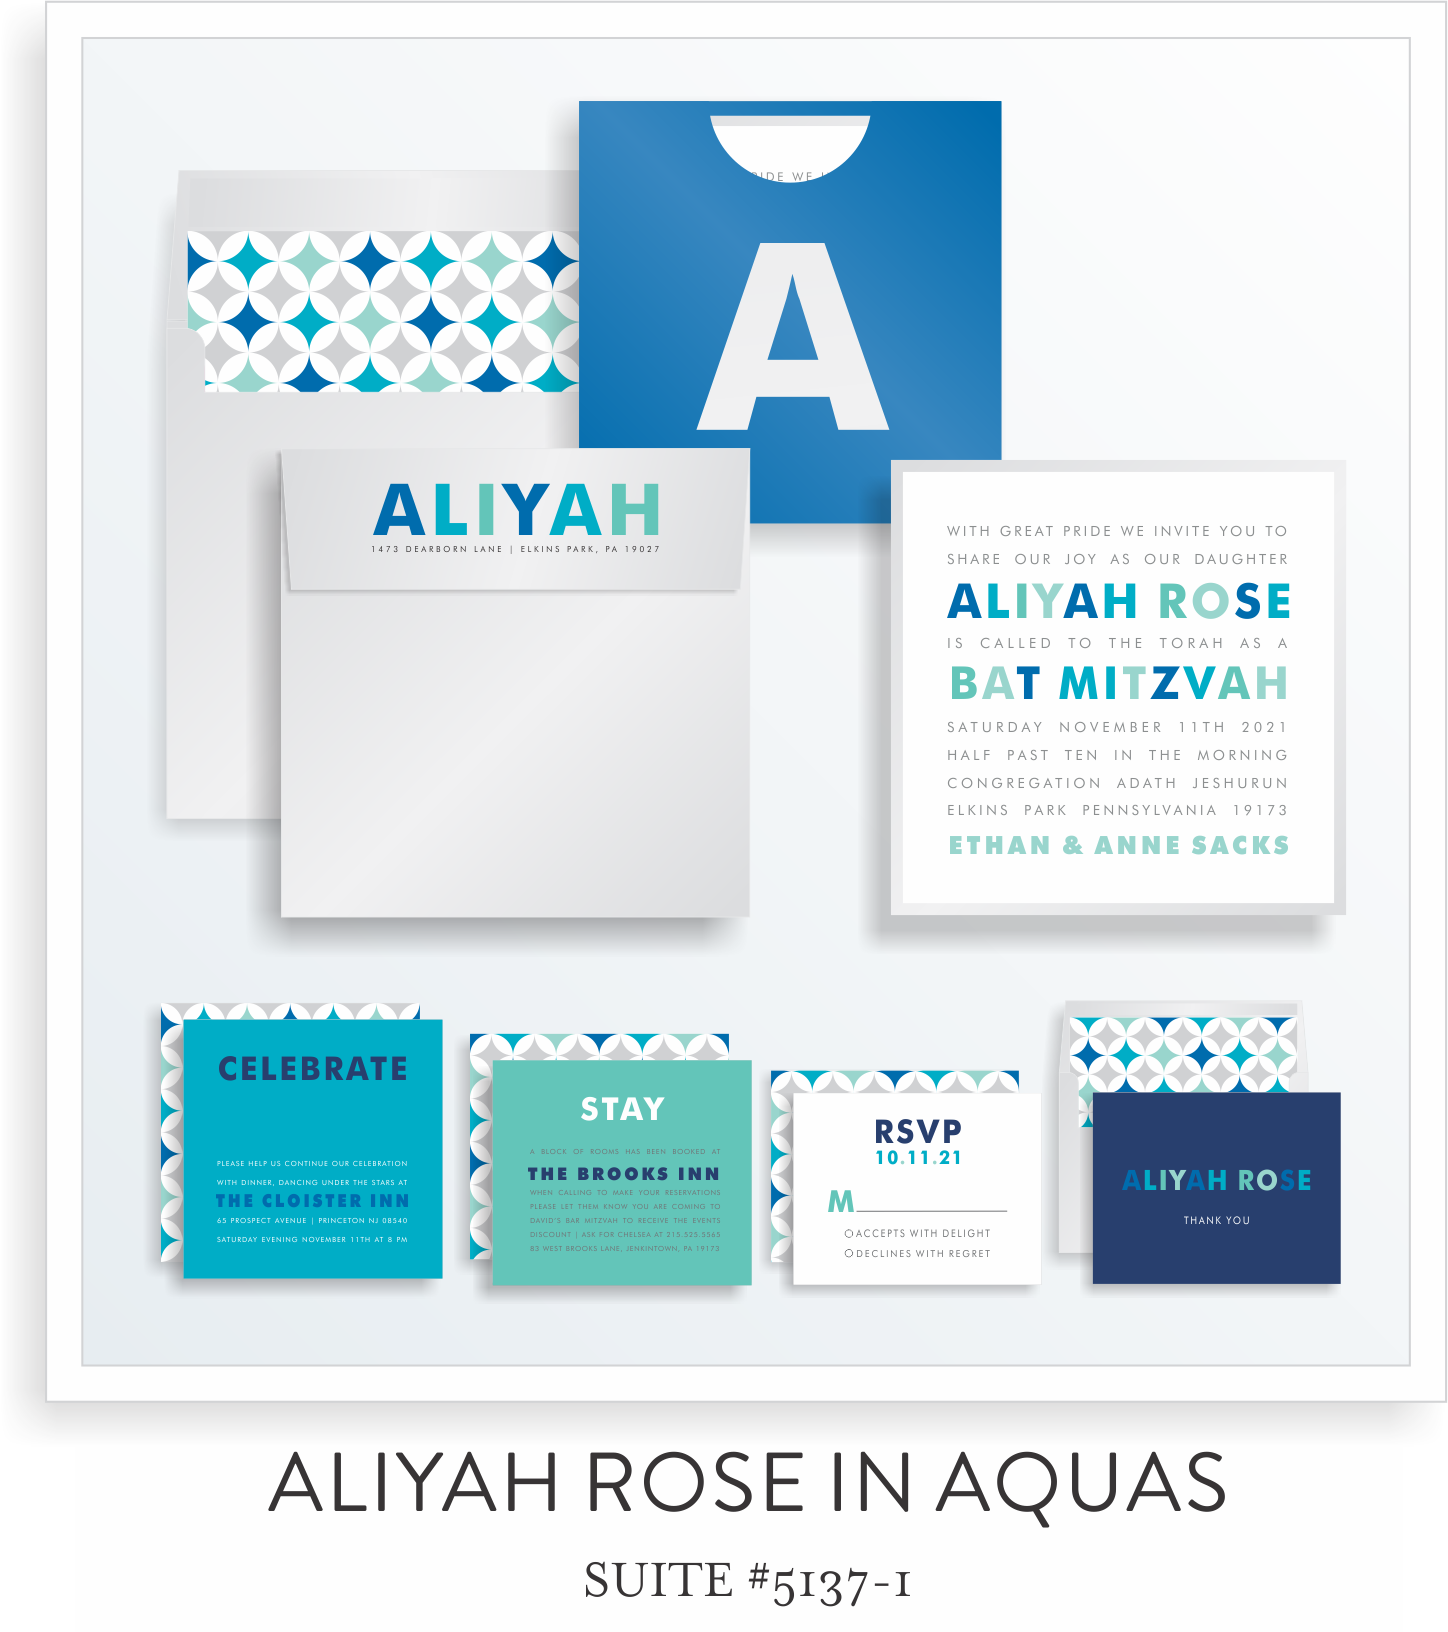 5137-1 ALIYAH ROSE AQUAS SUITE THUMB.png